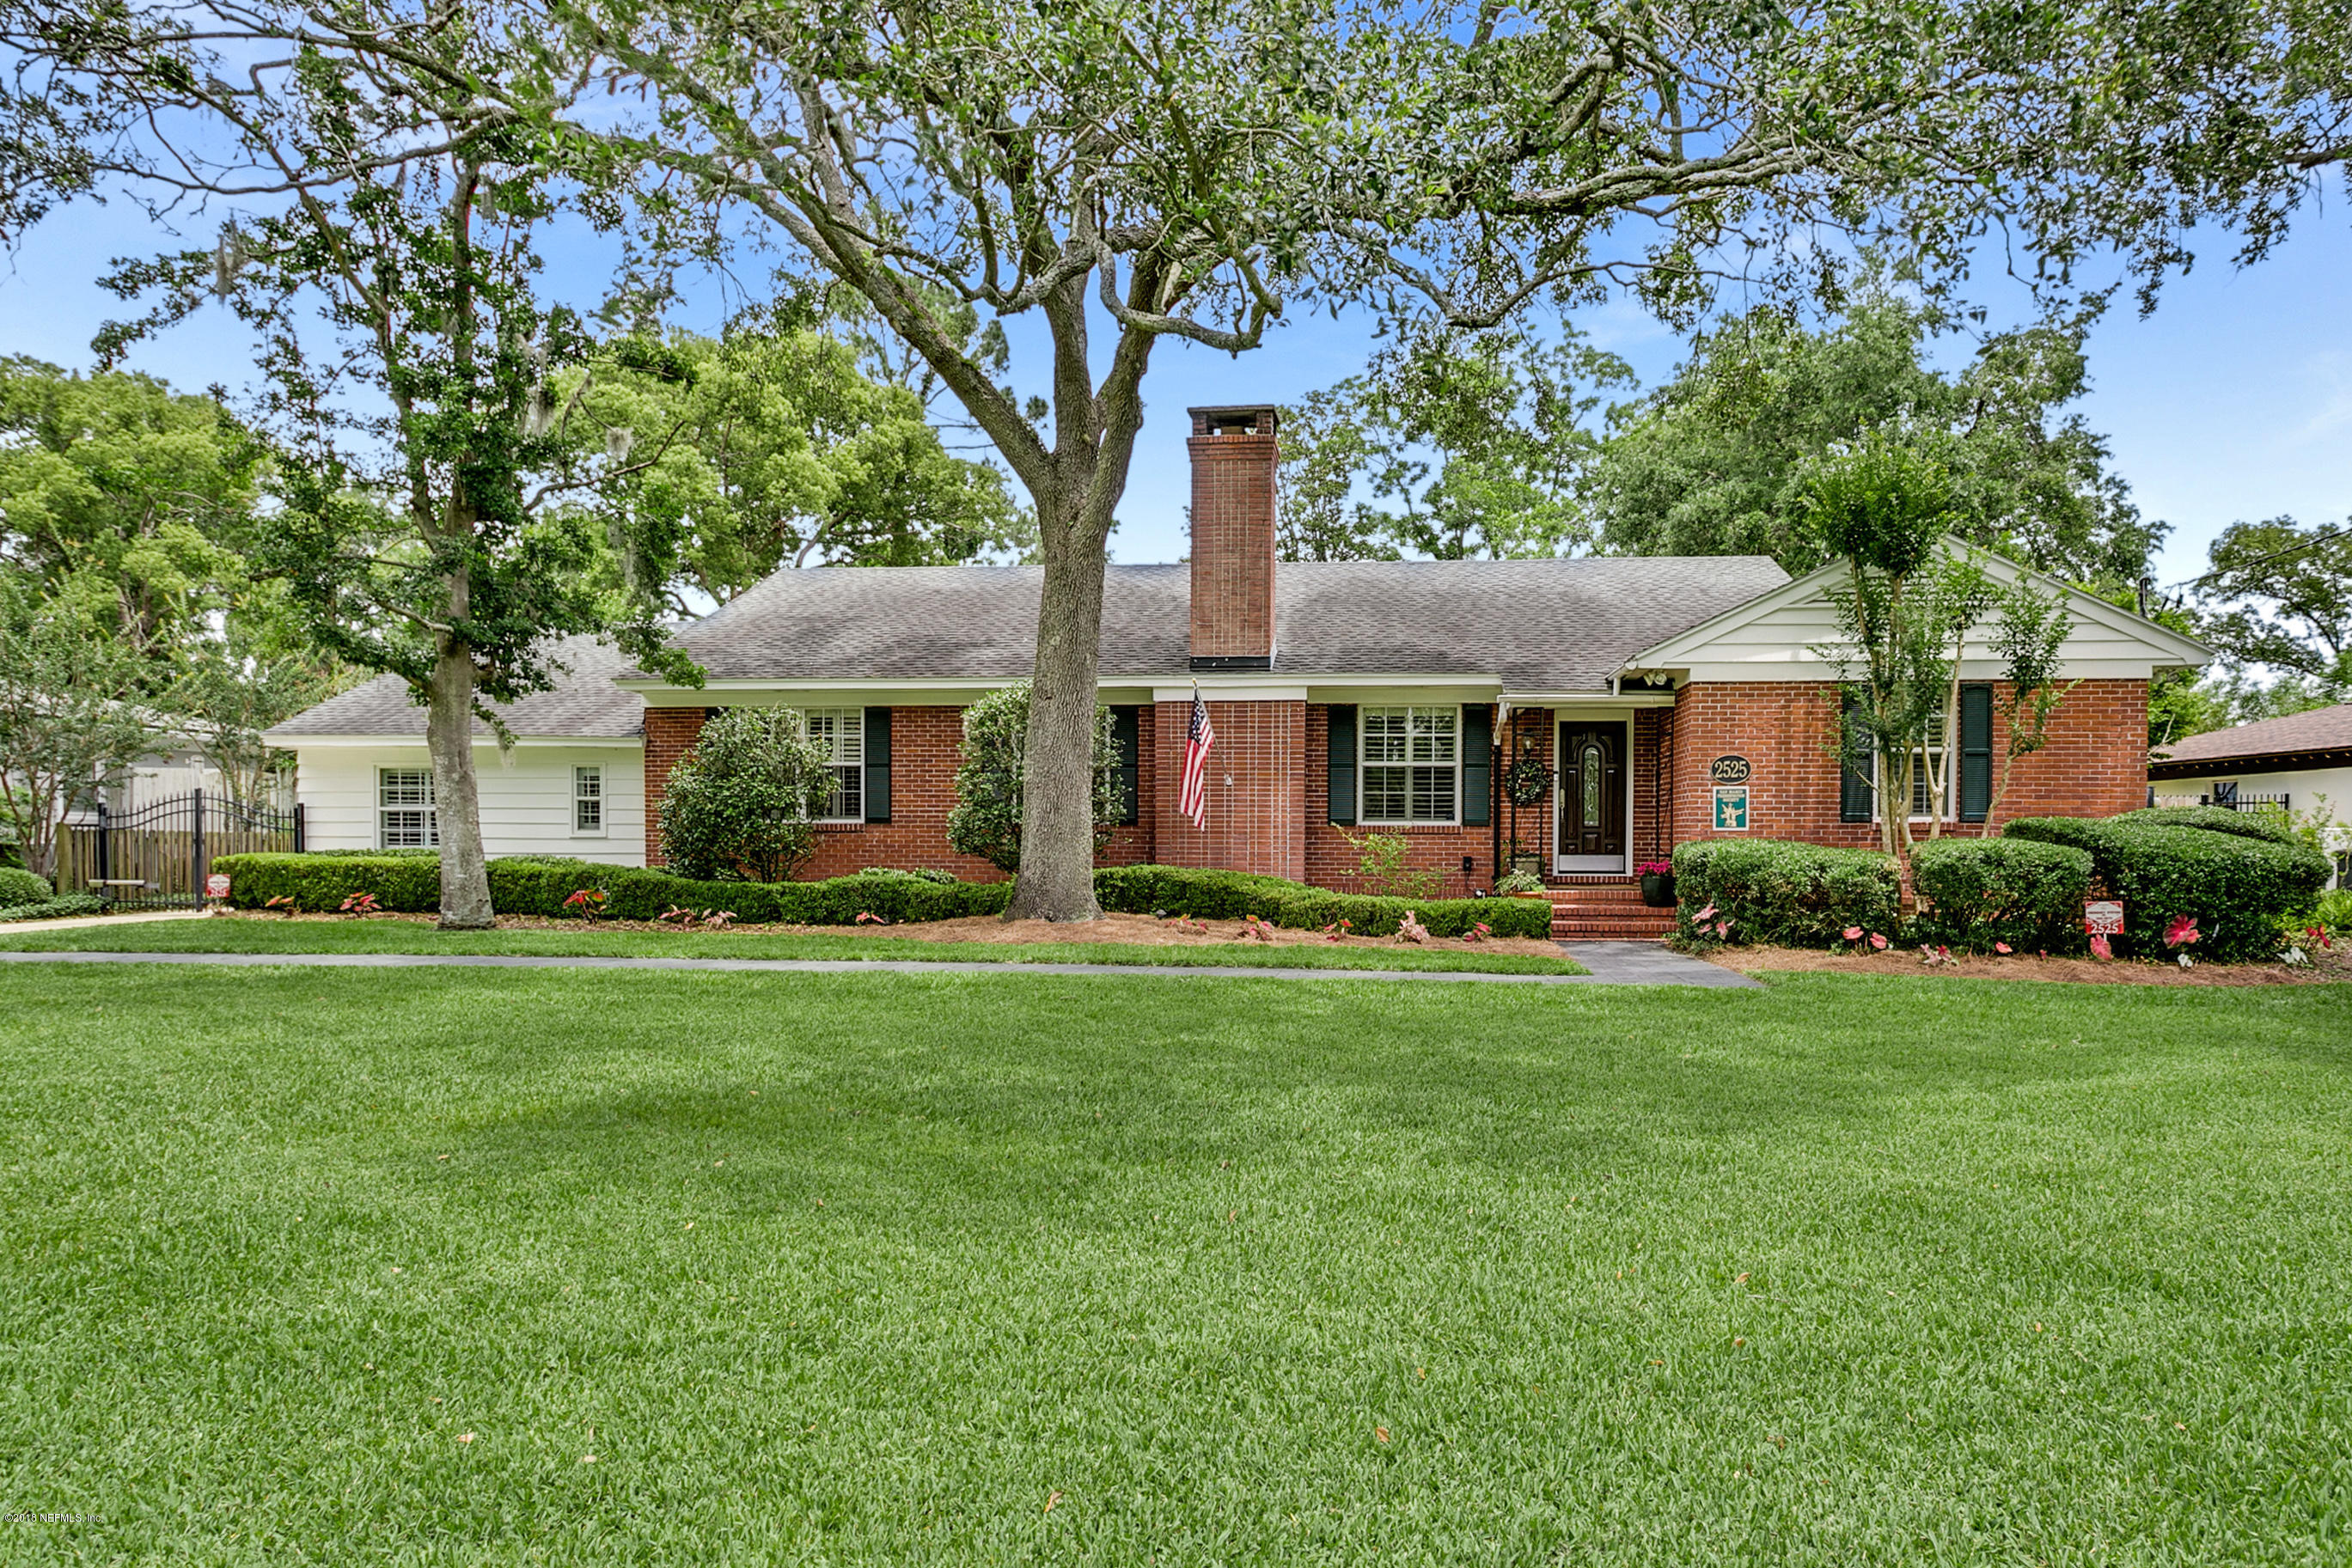 2525 LAUREL, JACKSONVILLE, FLORIDA 32207, 4 Bedrooms Bedrooms, ,4 BathroomsBathrooms,Residential - single family,For sale,LAUREL,938096